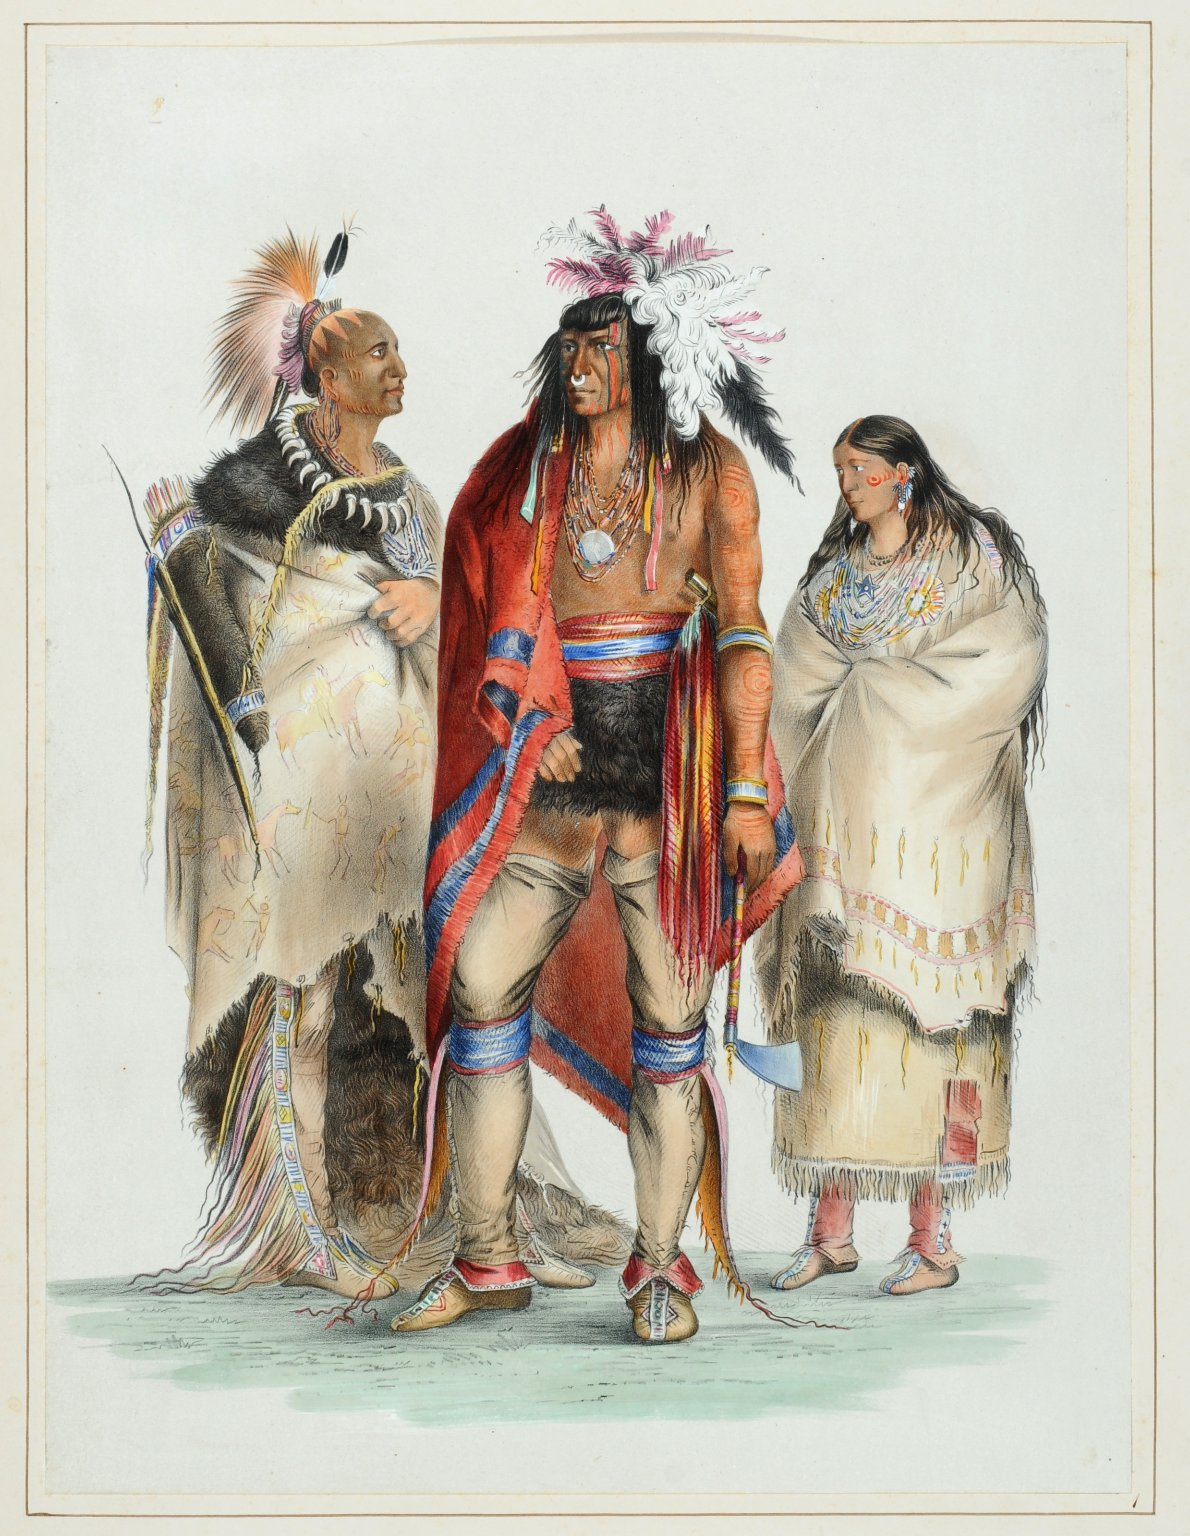 Group of North American Indians from Life.